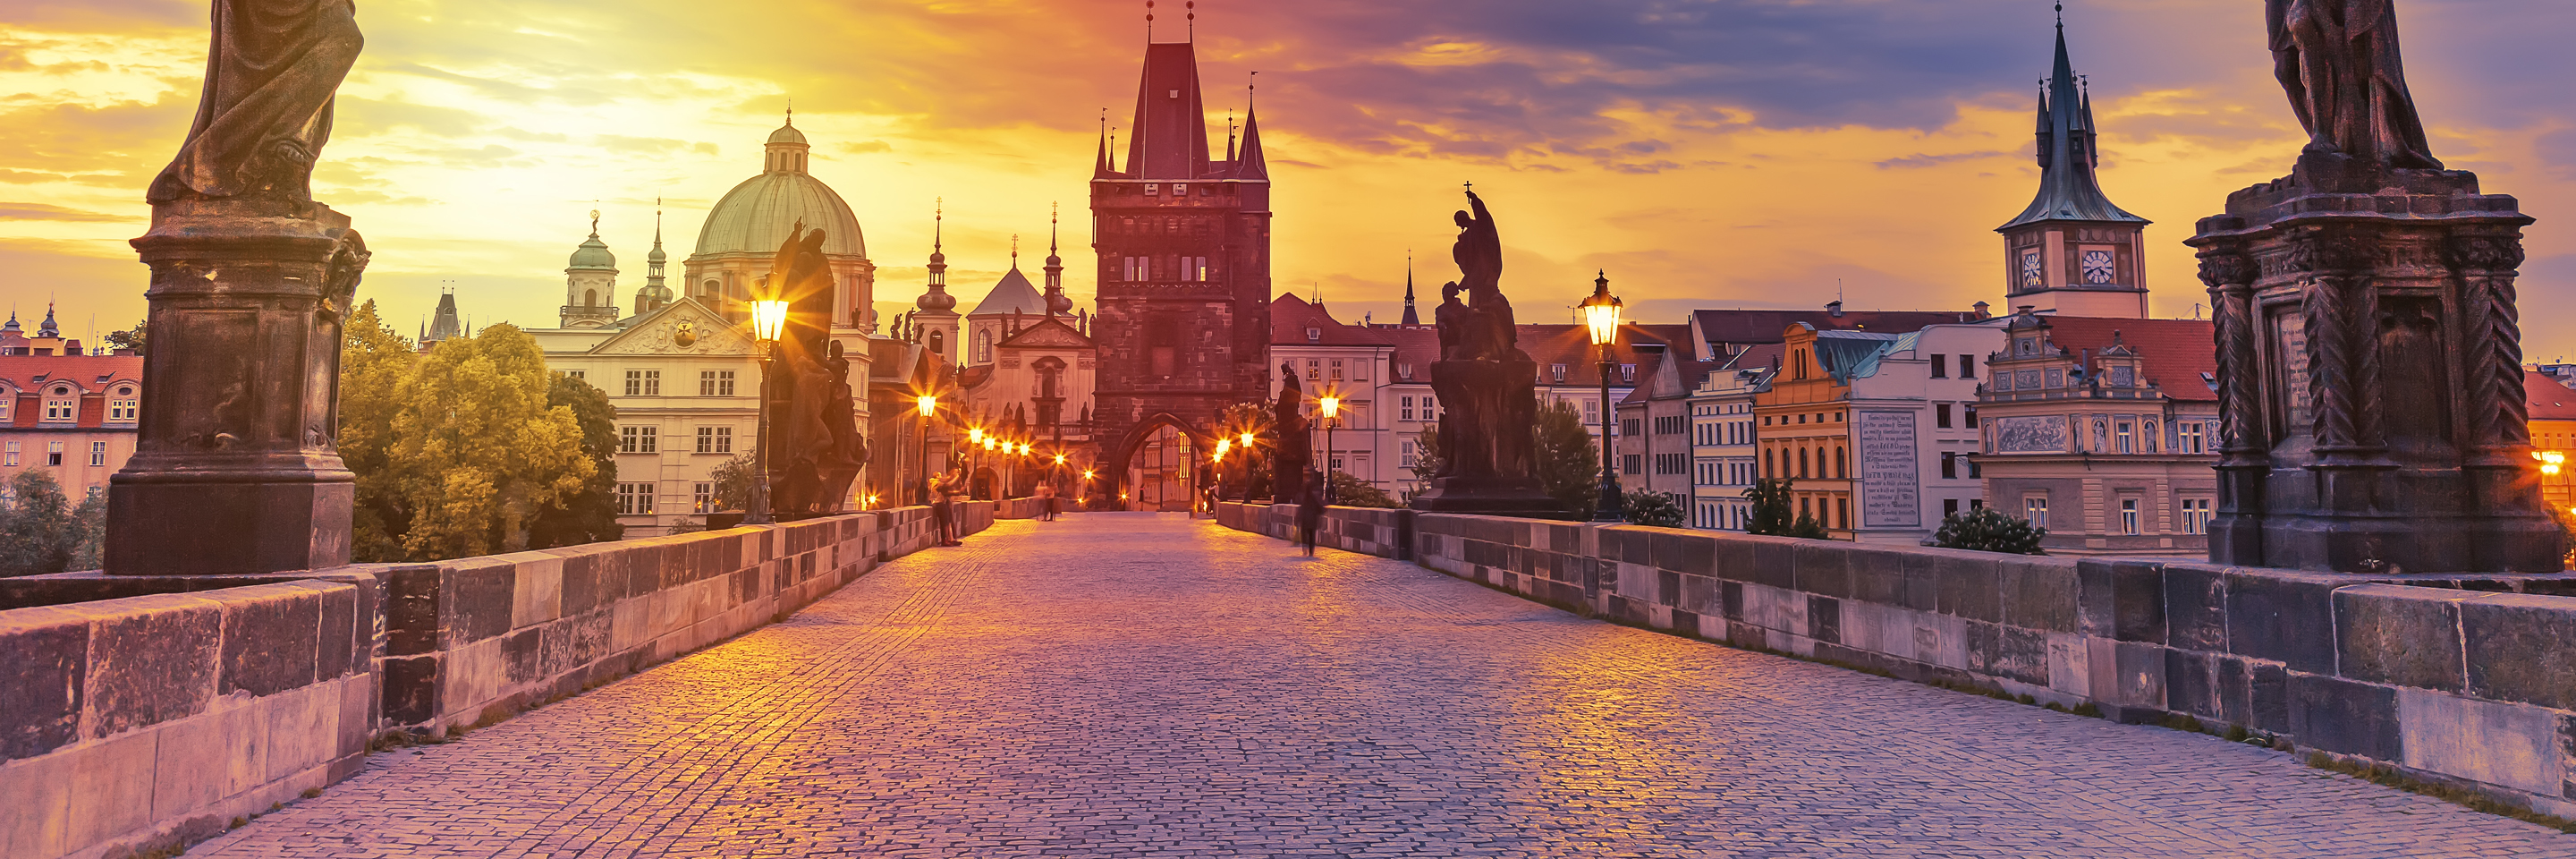 Danube Dreams with 2 Nights in Prague (Westbound)